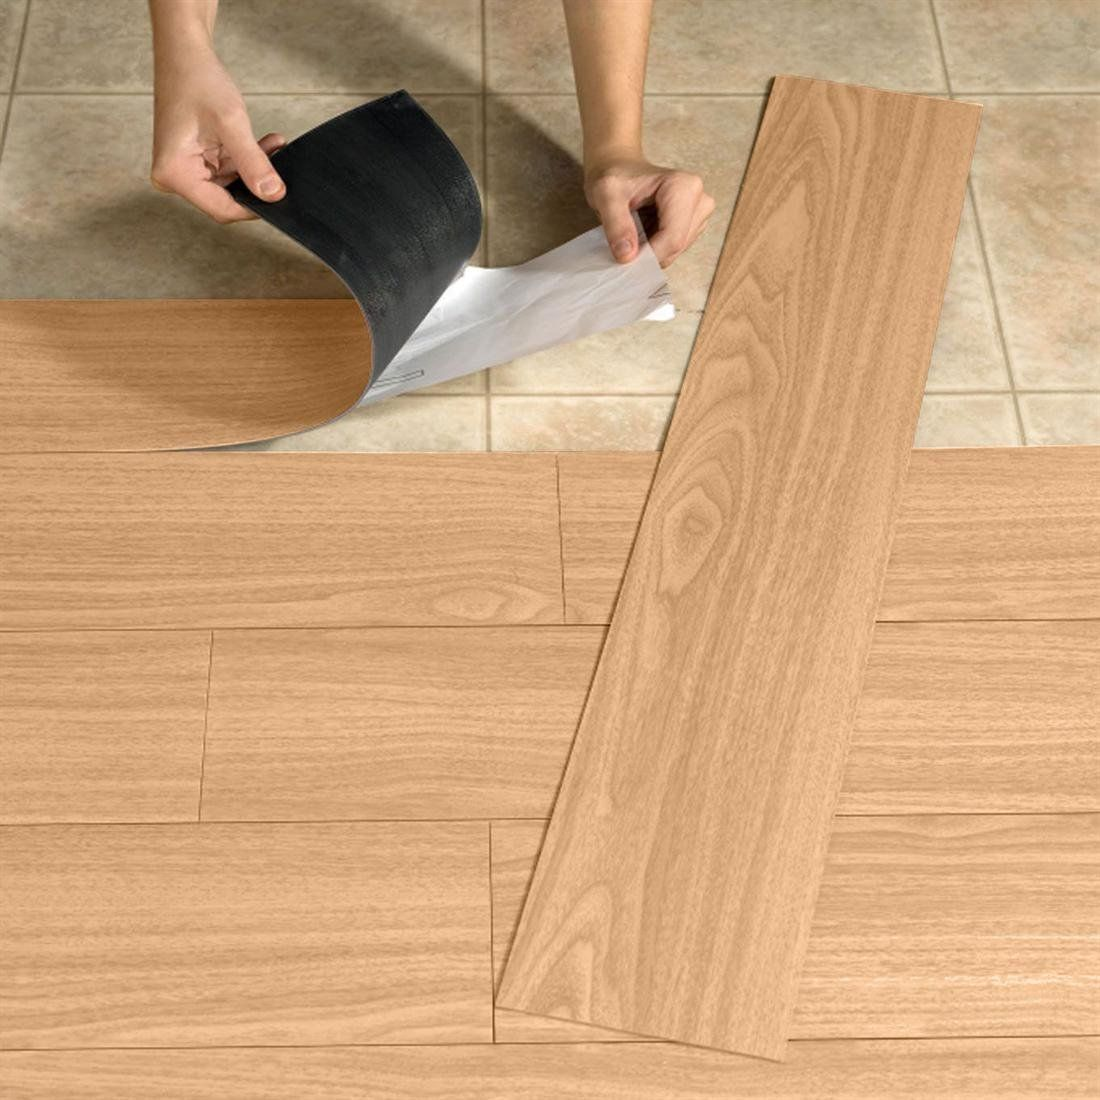 Stick On Tile Flooring Ncuhdwt | Tile | Pinterest | Tile flooring ...